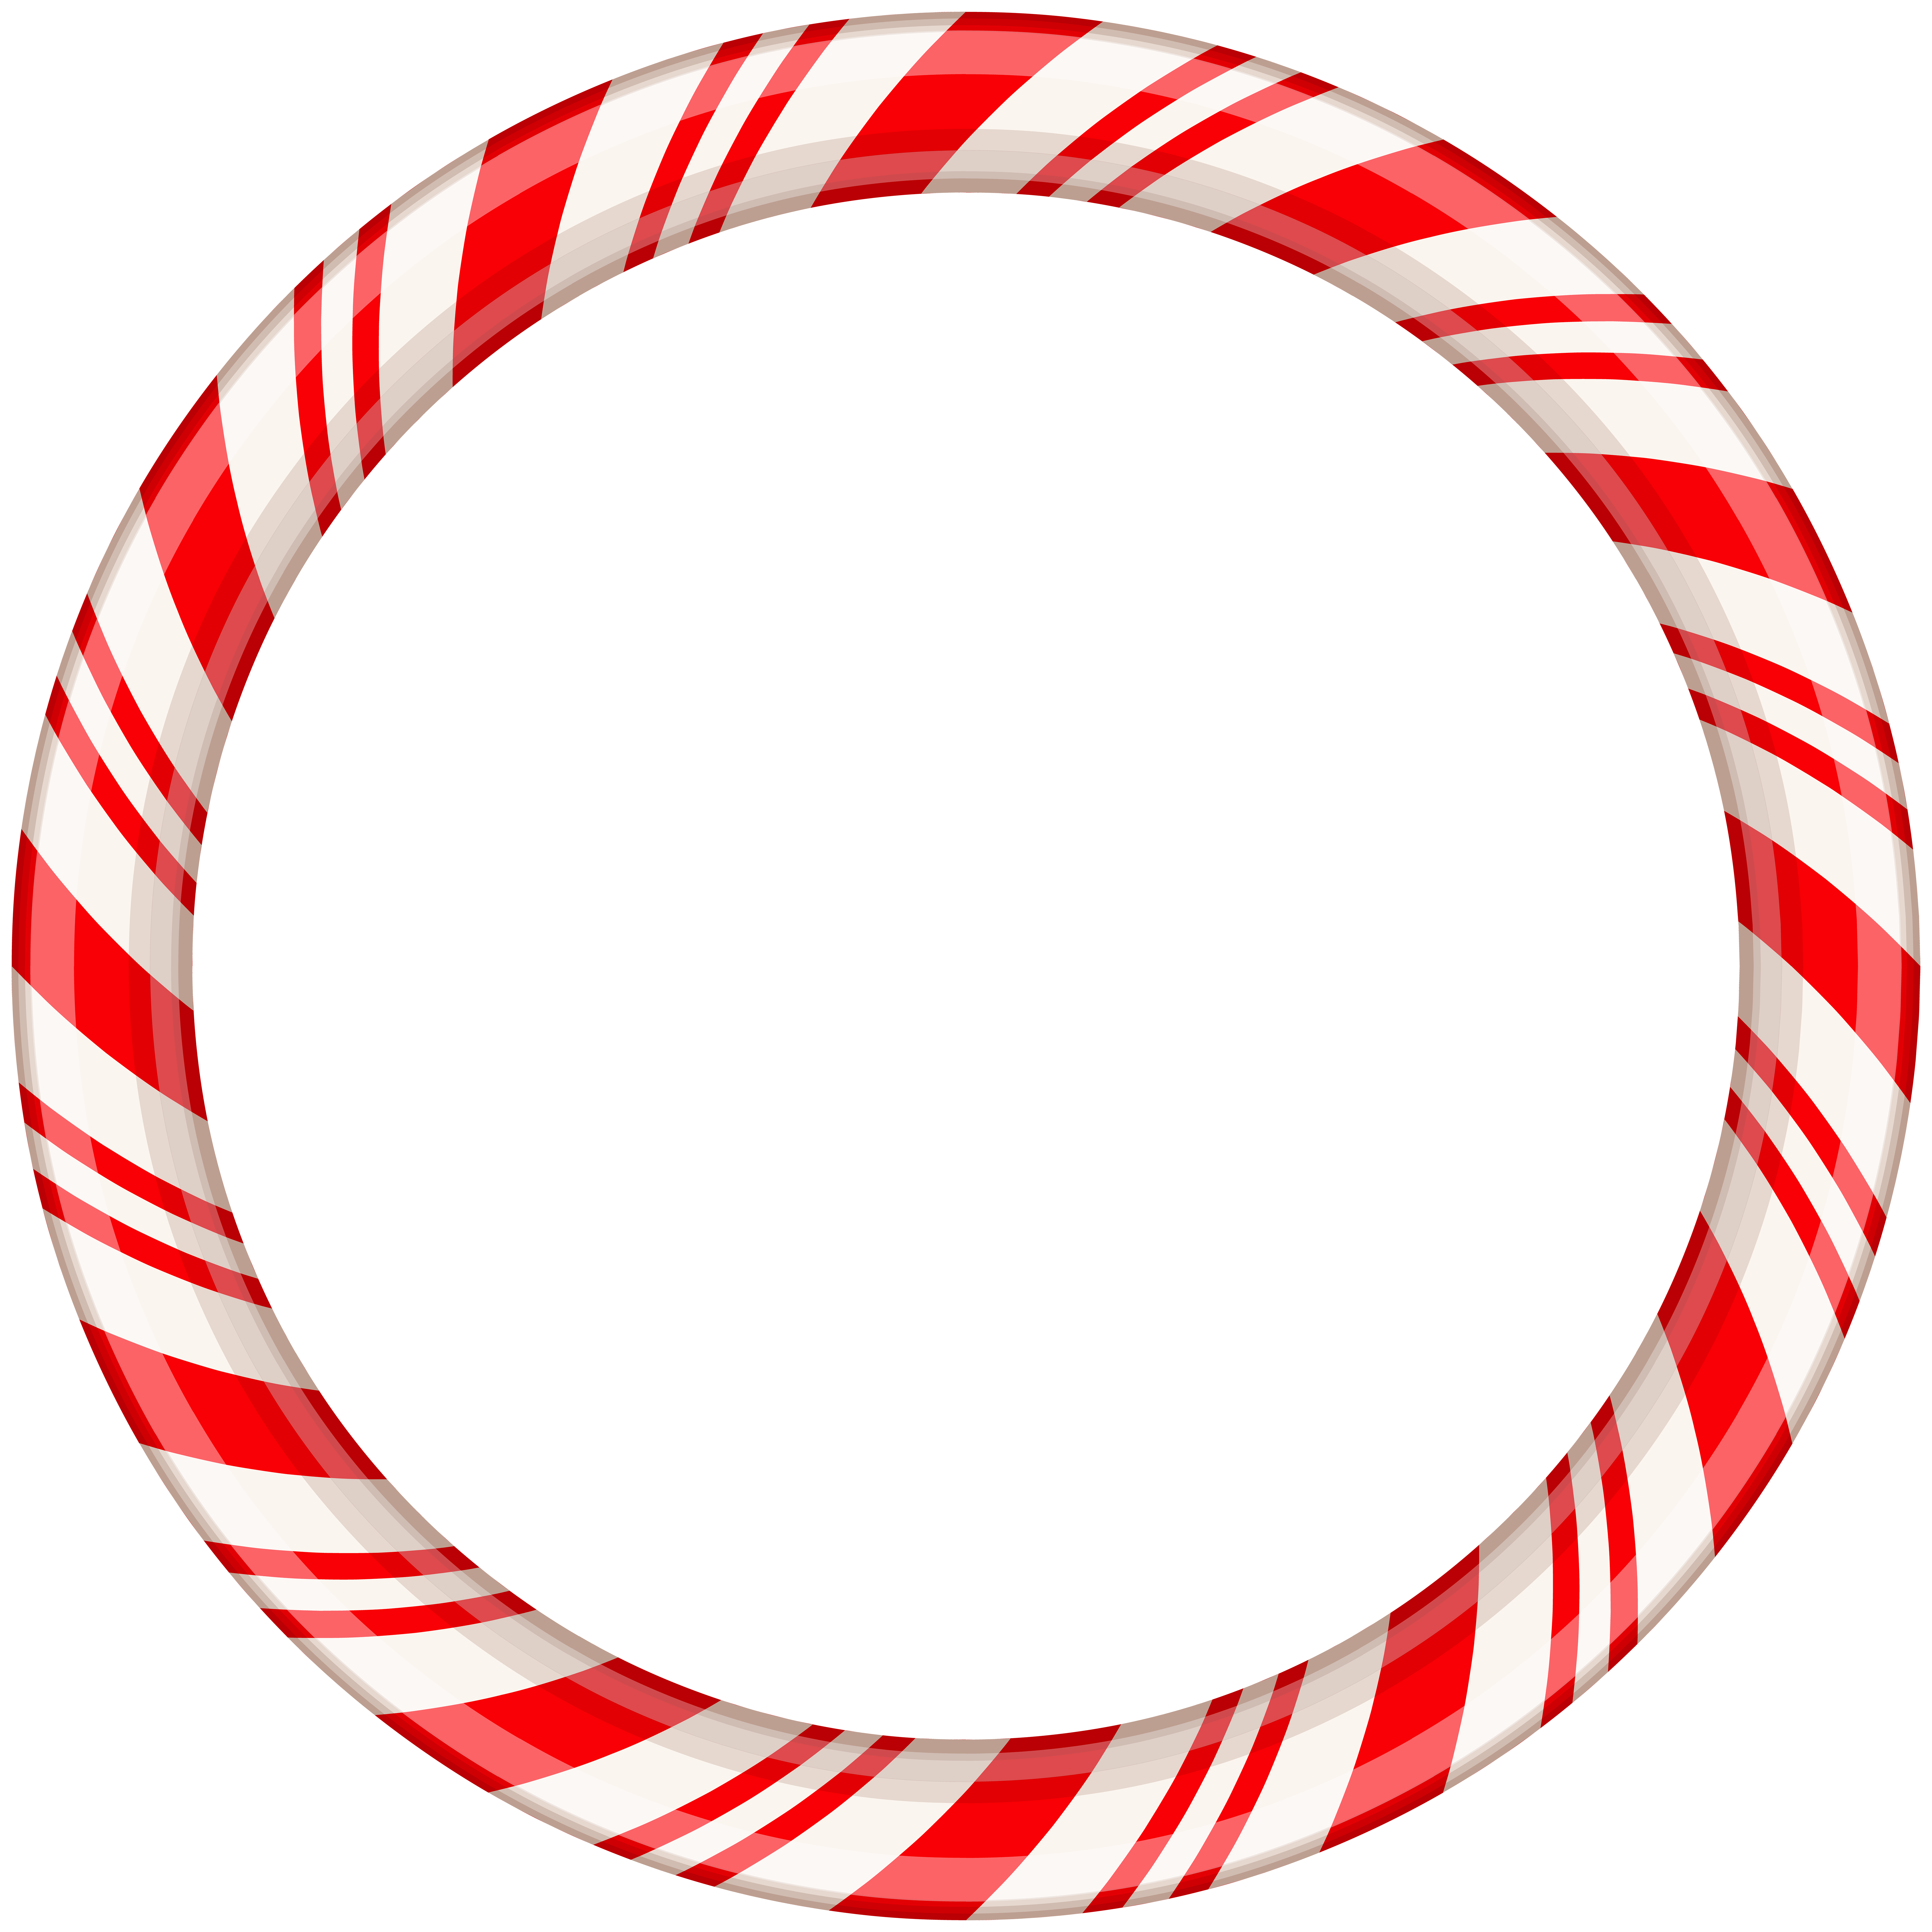 Candy cane clipart frame clip free download Candy Cane Round Border Frame Transparent Clip Art | Gallery ... clip free download